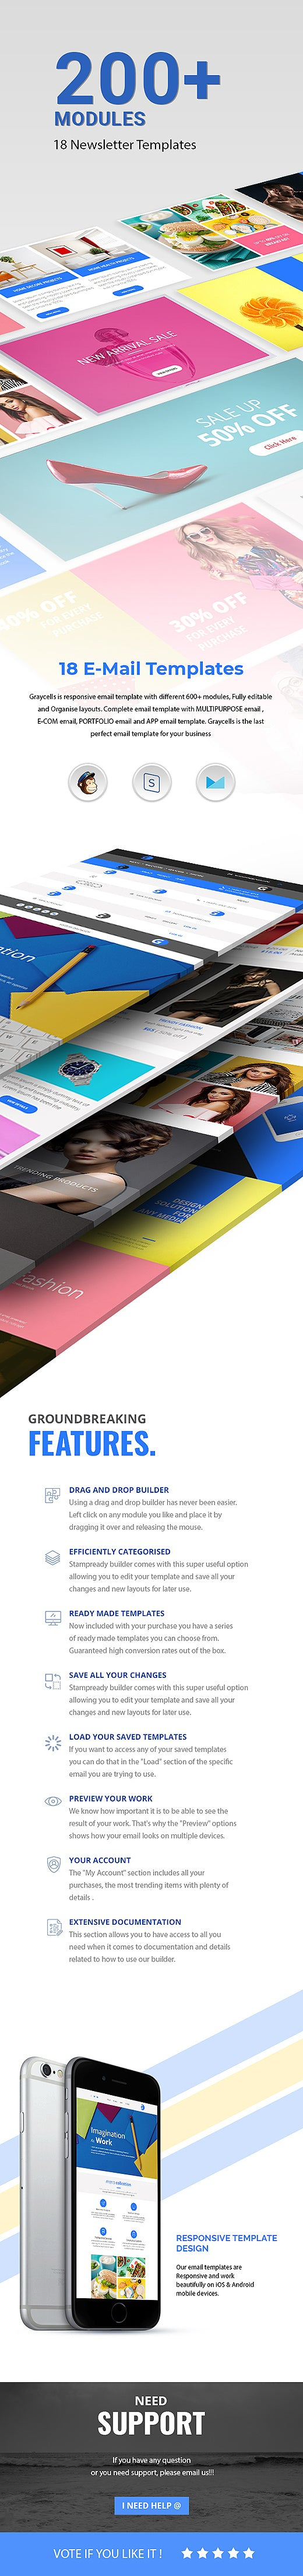 graycells-200-modules-multipurpose-responsive-email-templates